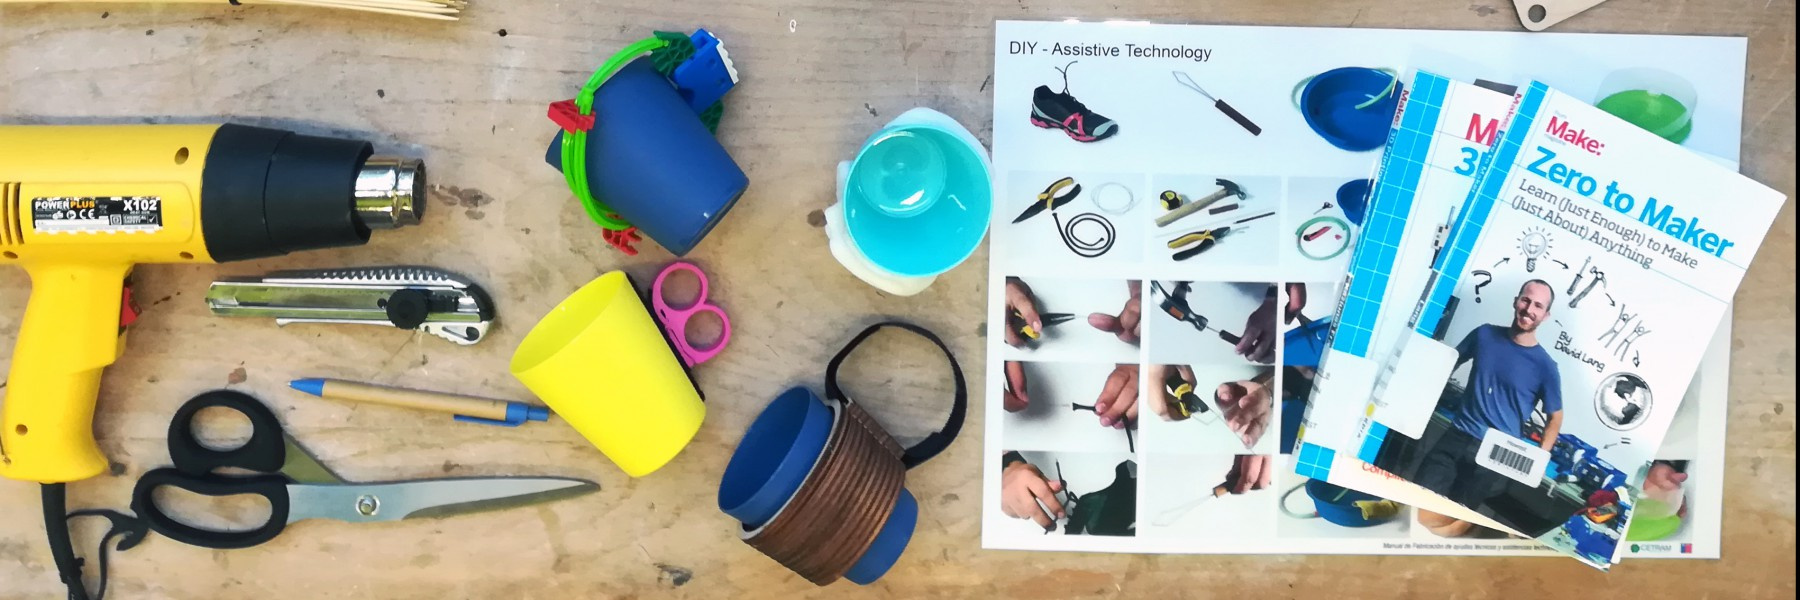 Howest Ergotherapie start met specialisatietraject MakeAbility: DIY-AT skills